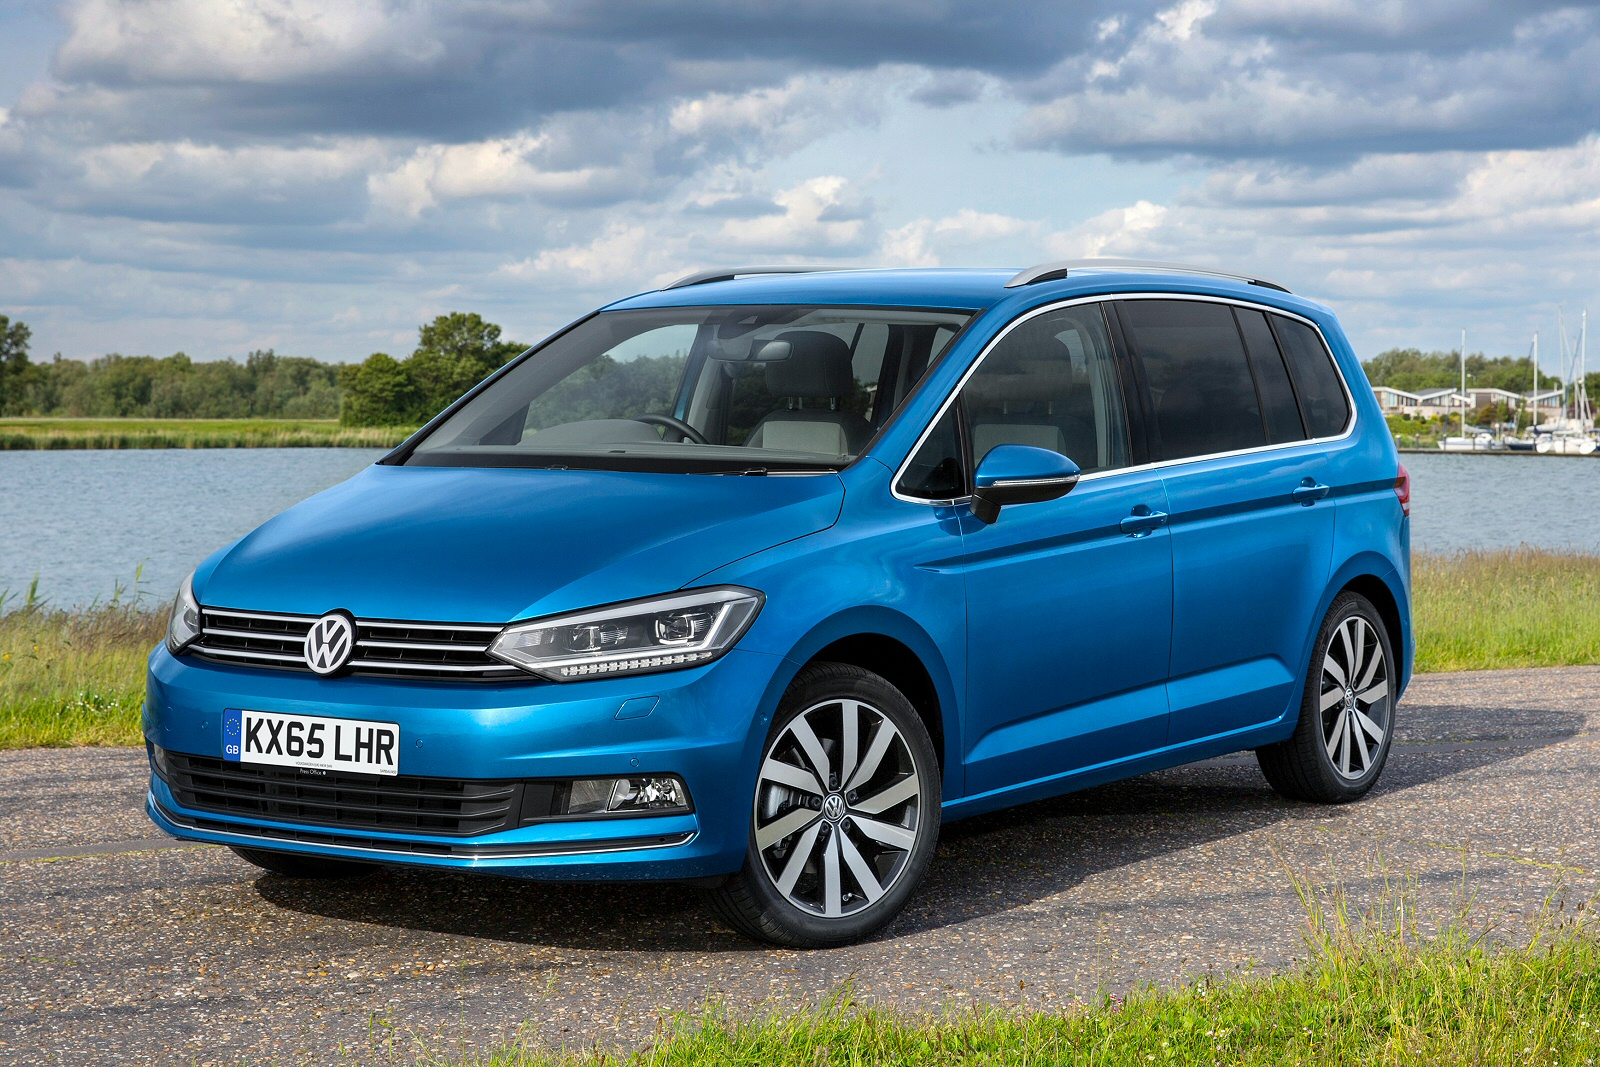 New Volkswagen Touran 2 0 Tdi Se Family 5Dr Dsg Diesel Estate for